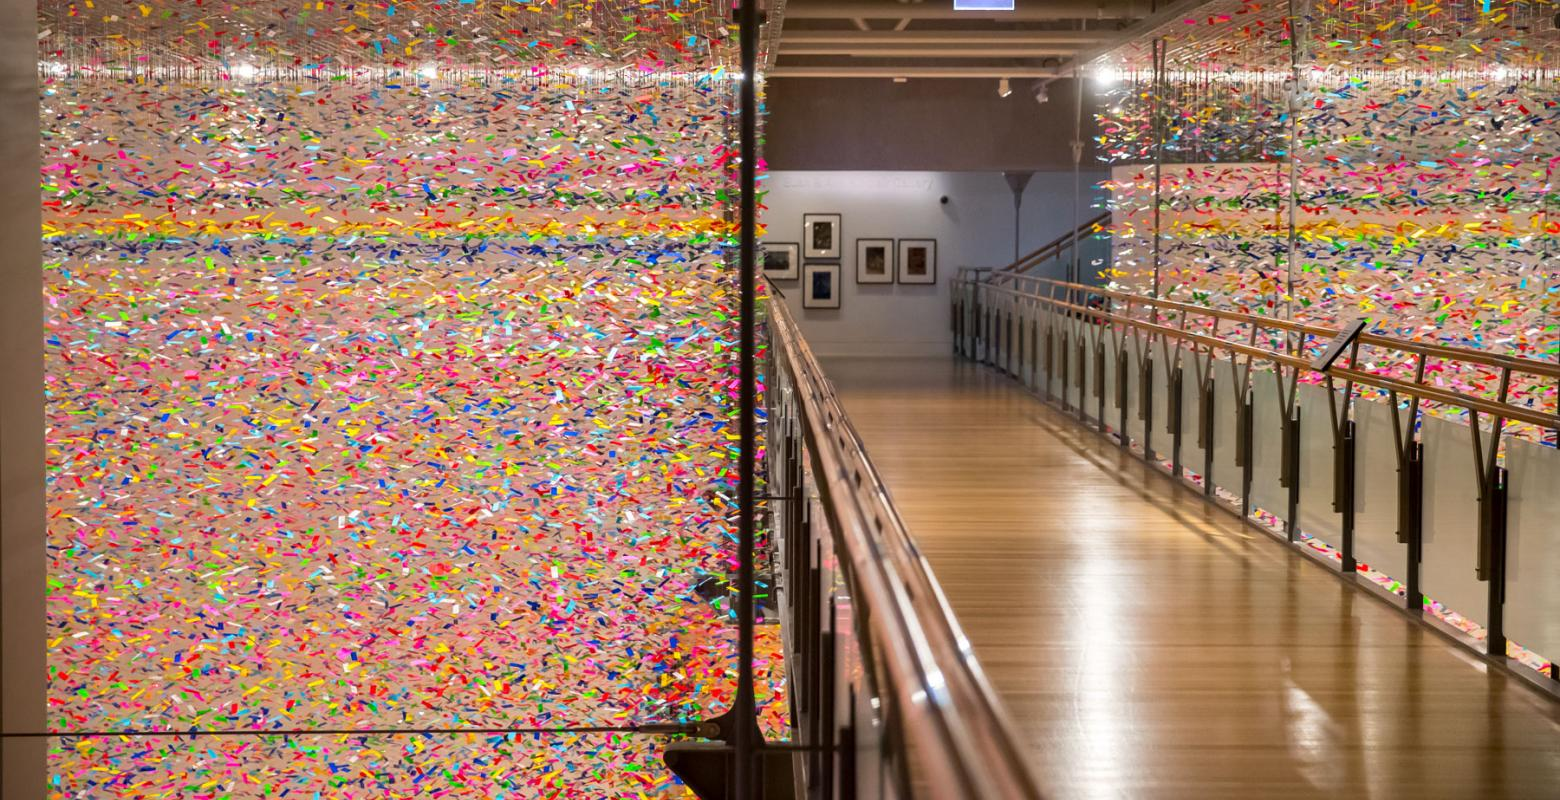 Installation shot of the colourful artwork which looks like confetti filling the whole gallery space